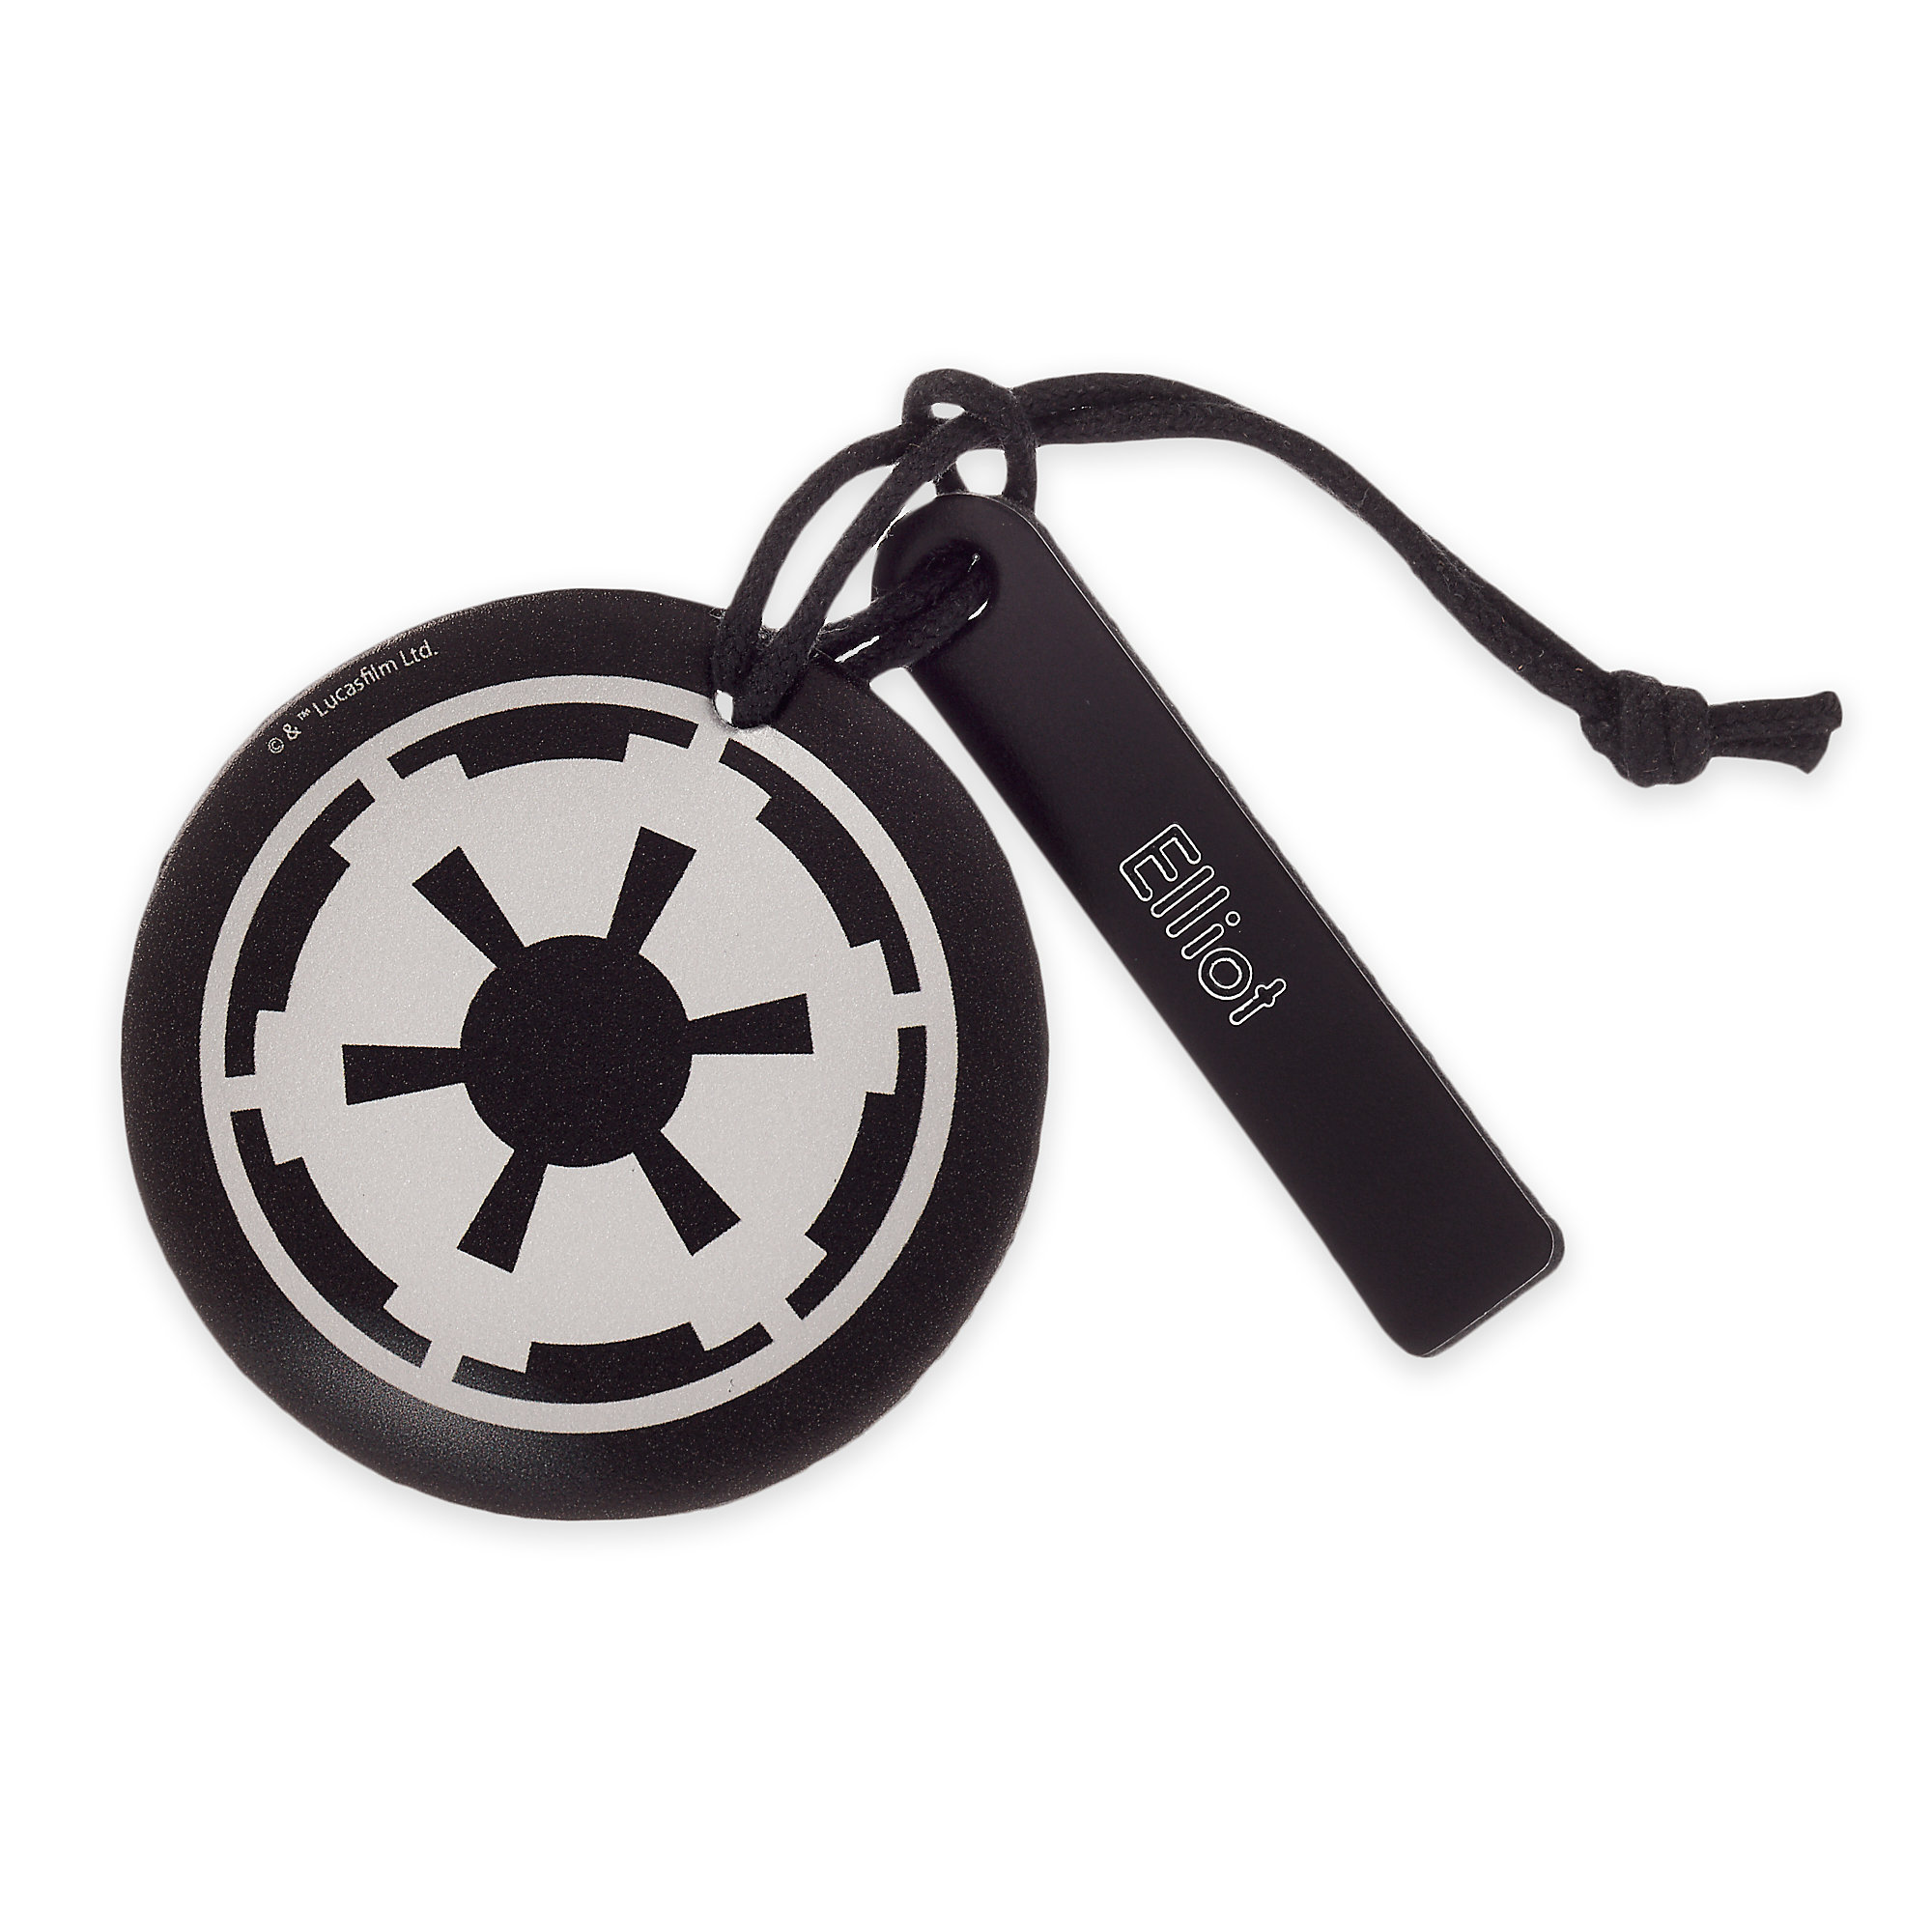 Star Wars Imperial Symbol Leather Luggage Tag - Personalizable